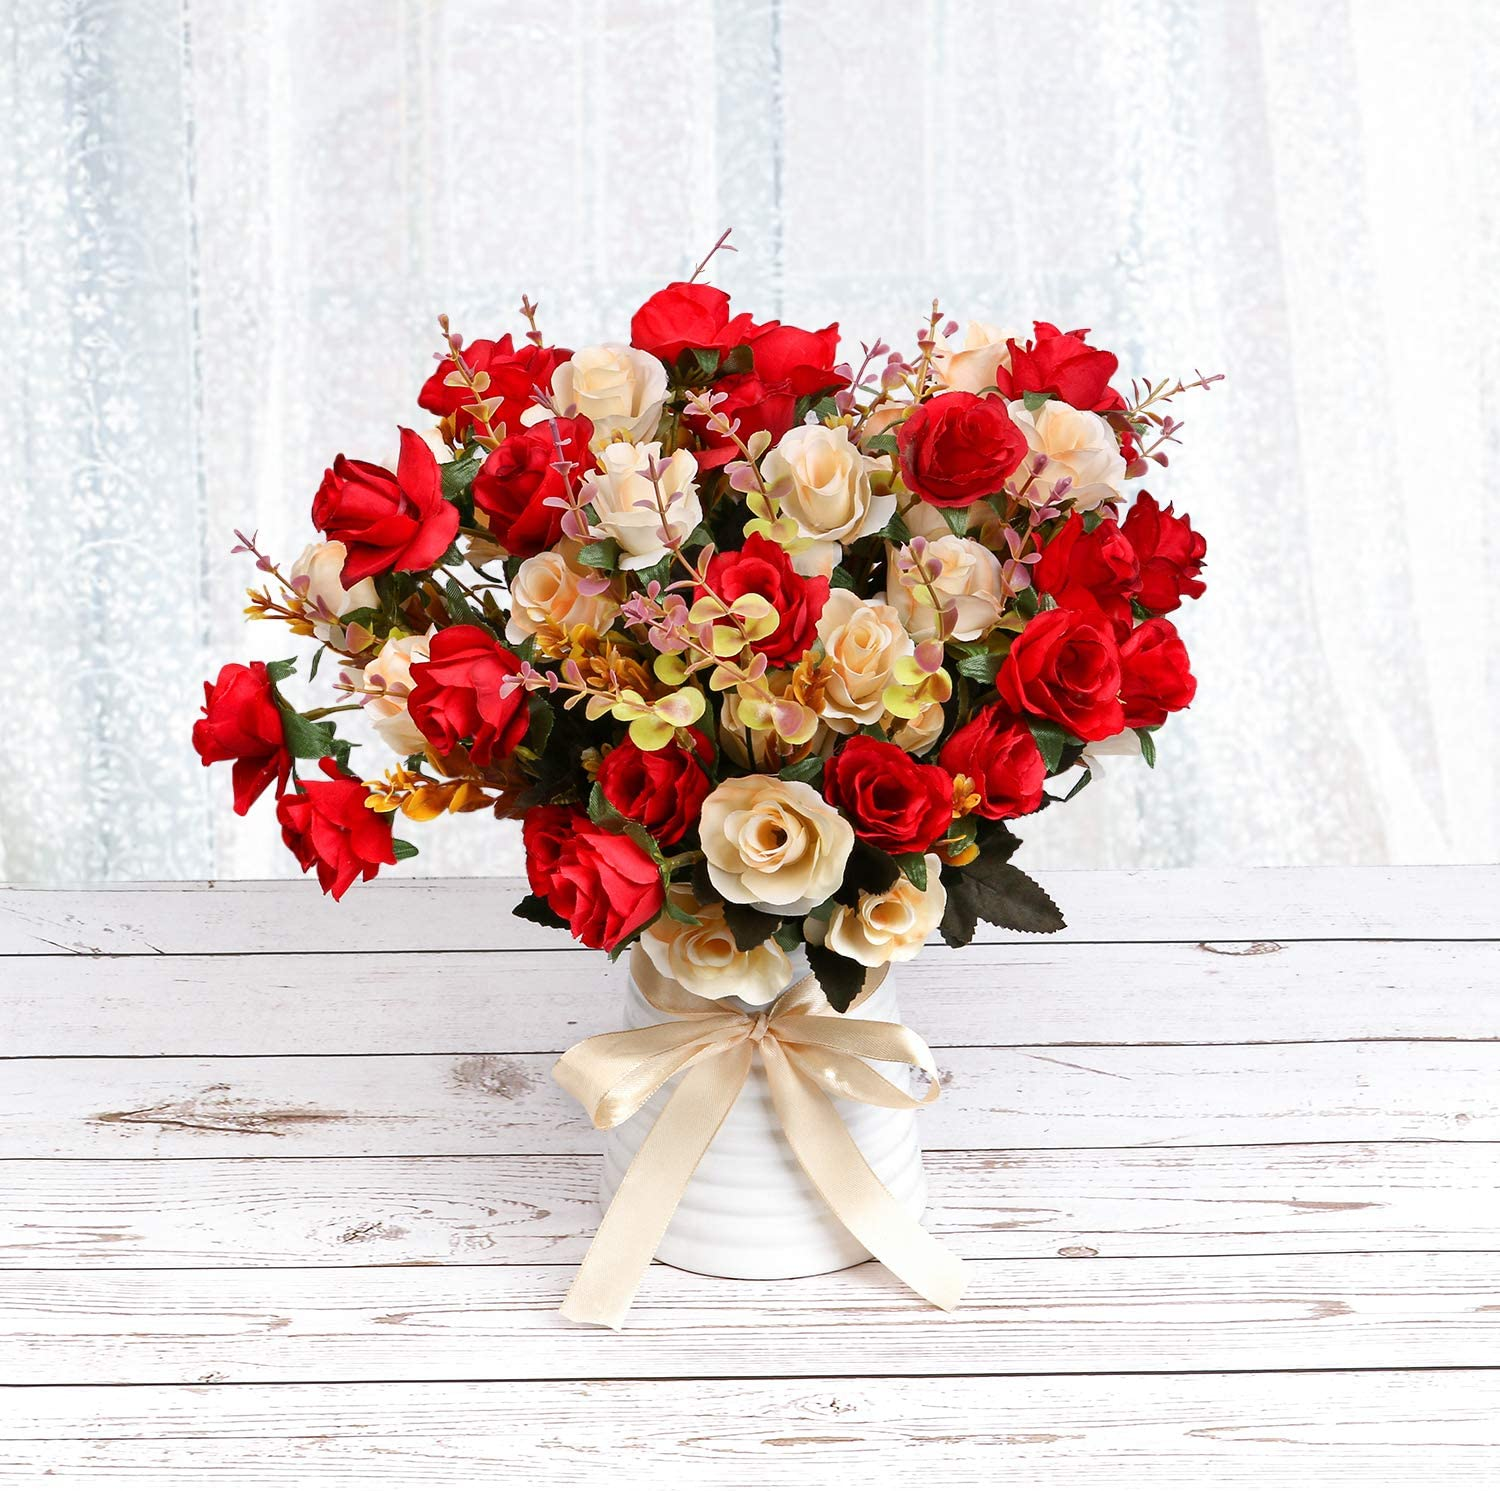 LY EMMET Artificial Rose Bouquets with Ceramics Vase Fake Silk Rose Flowers Decoration for Table Home Office Wedding-Red